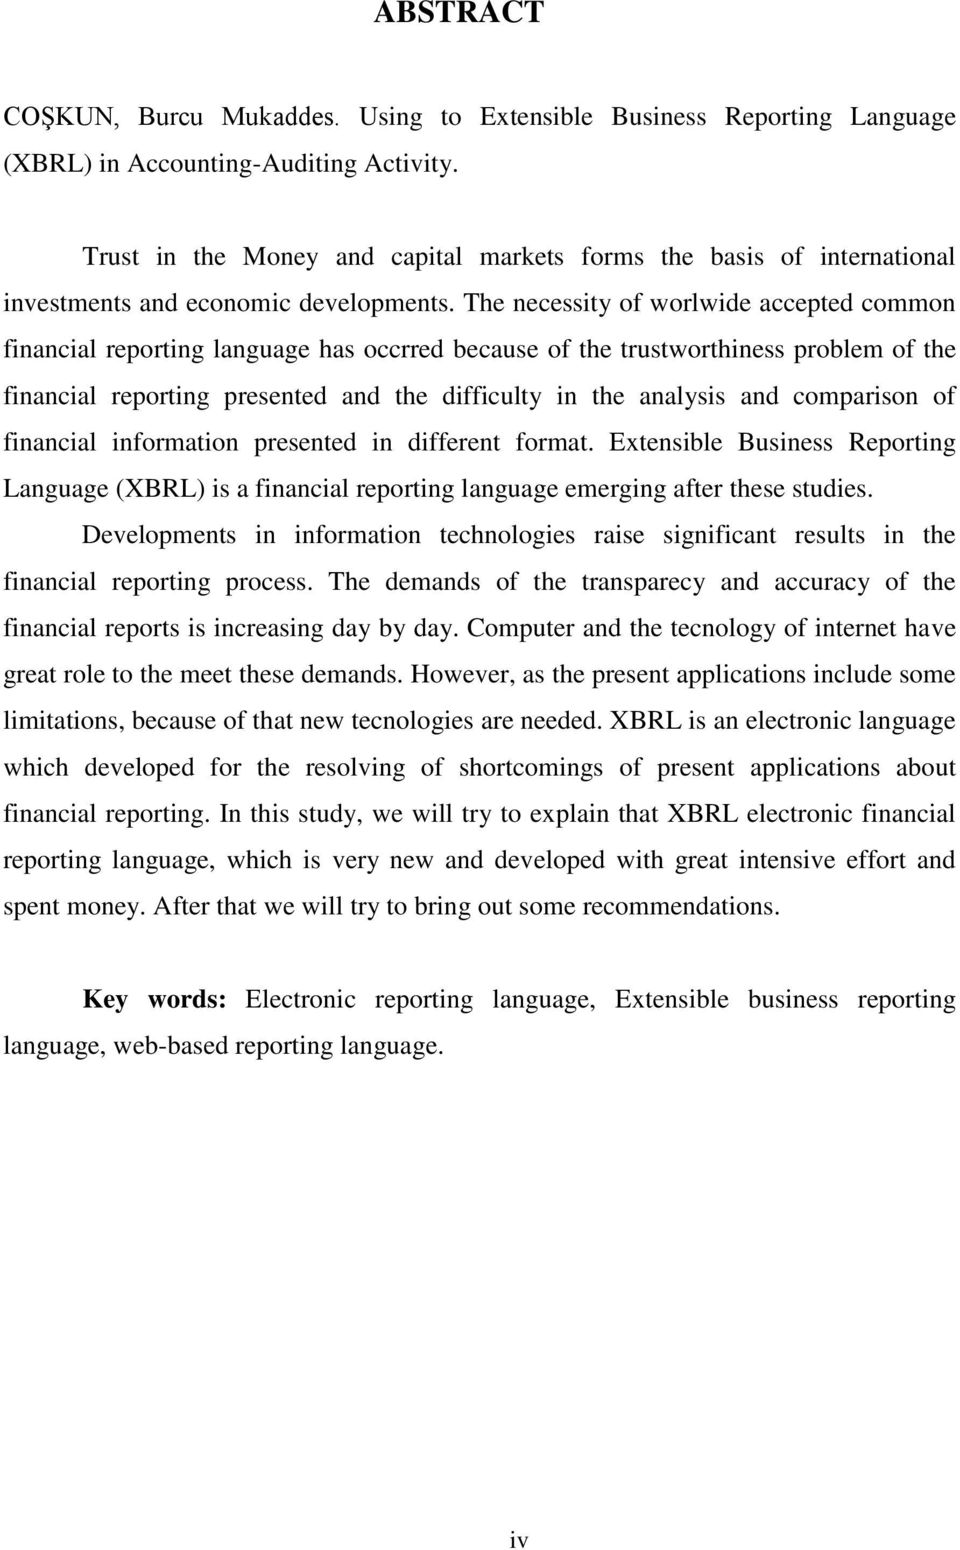 The necessity of worlwide accepted common financial reporting language has occrred because of the trustworthiness problem of the financial reporting presented and the difficulty in the analysis and